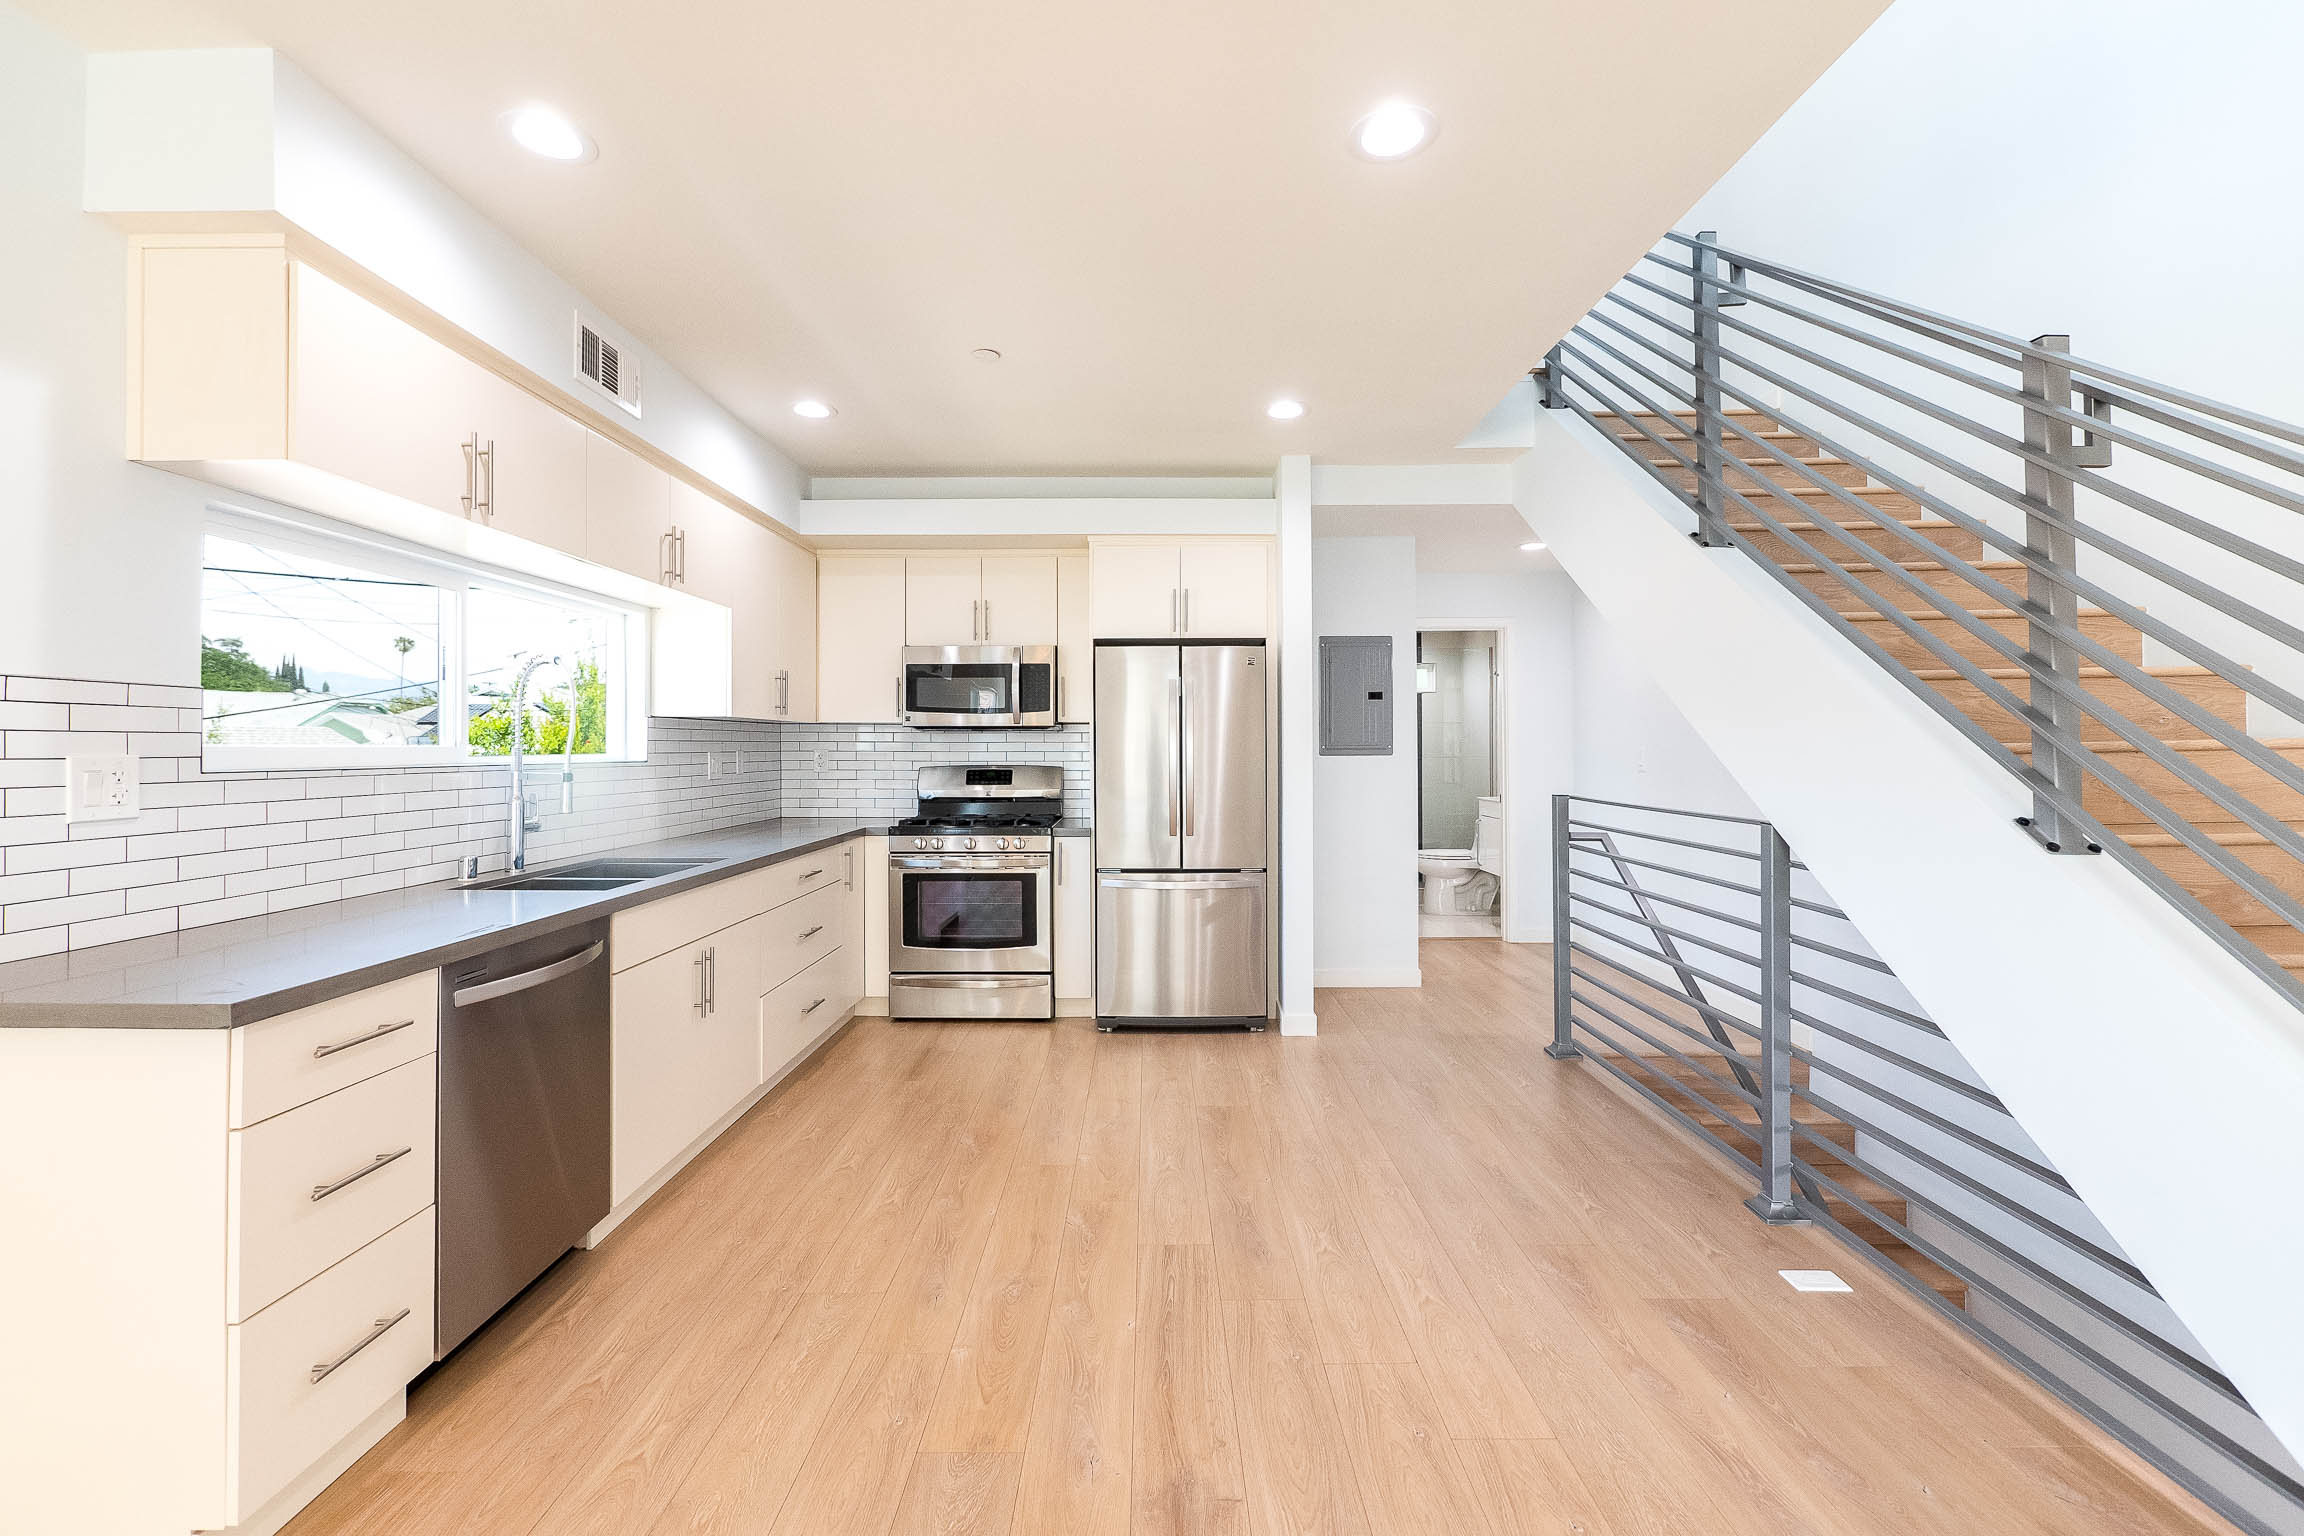 BRAND-NEW 4-Unit Complex: Unique Luxury in the Heart of Hollywood! 3BR/ 3BA